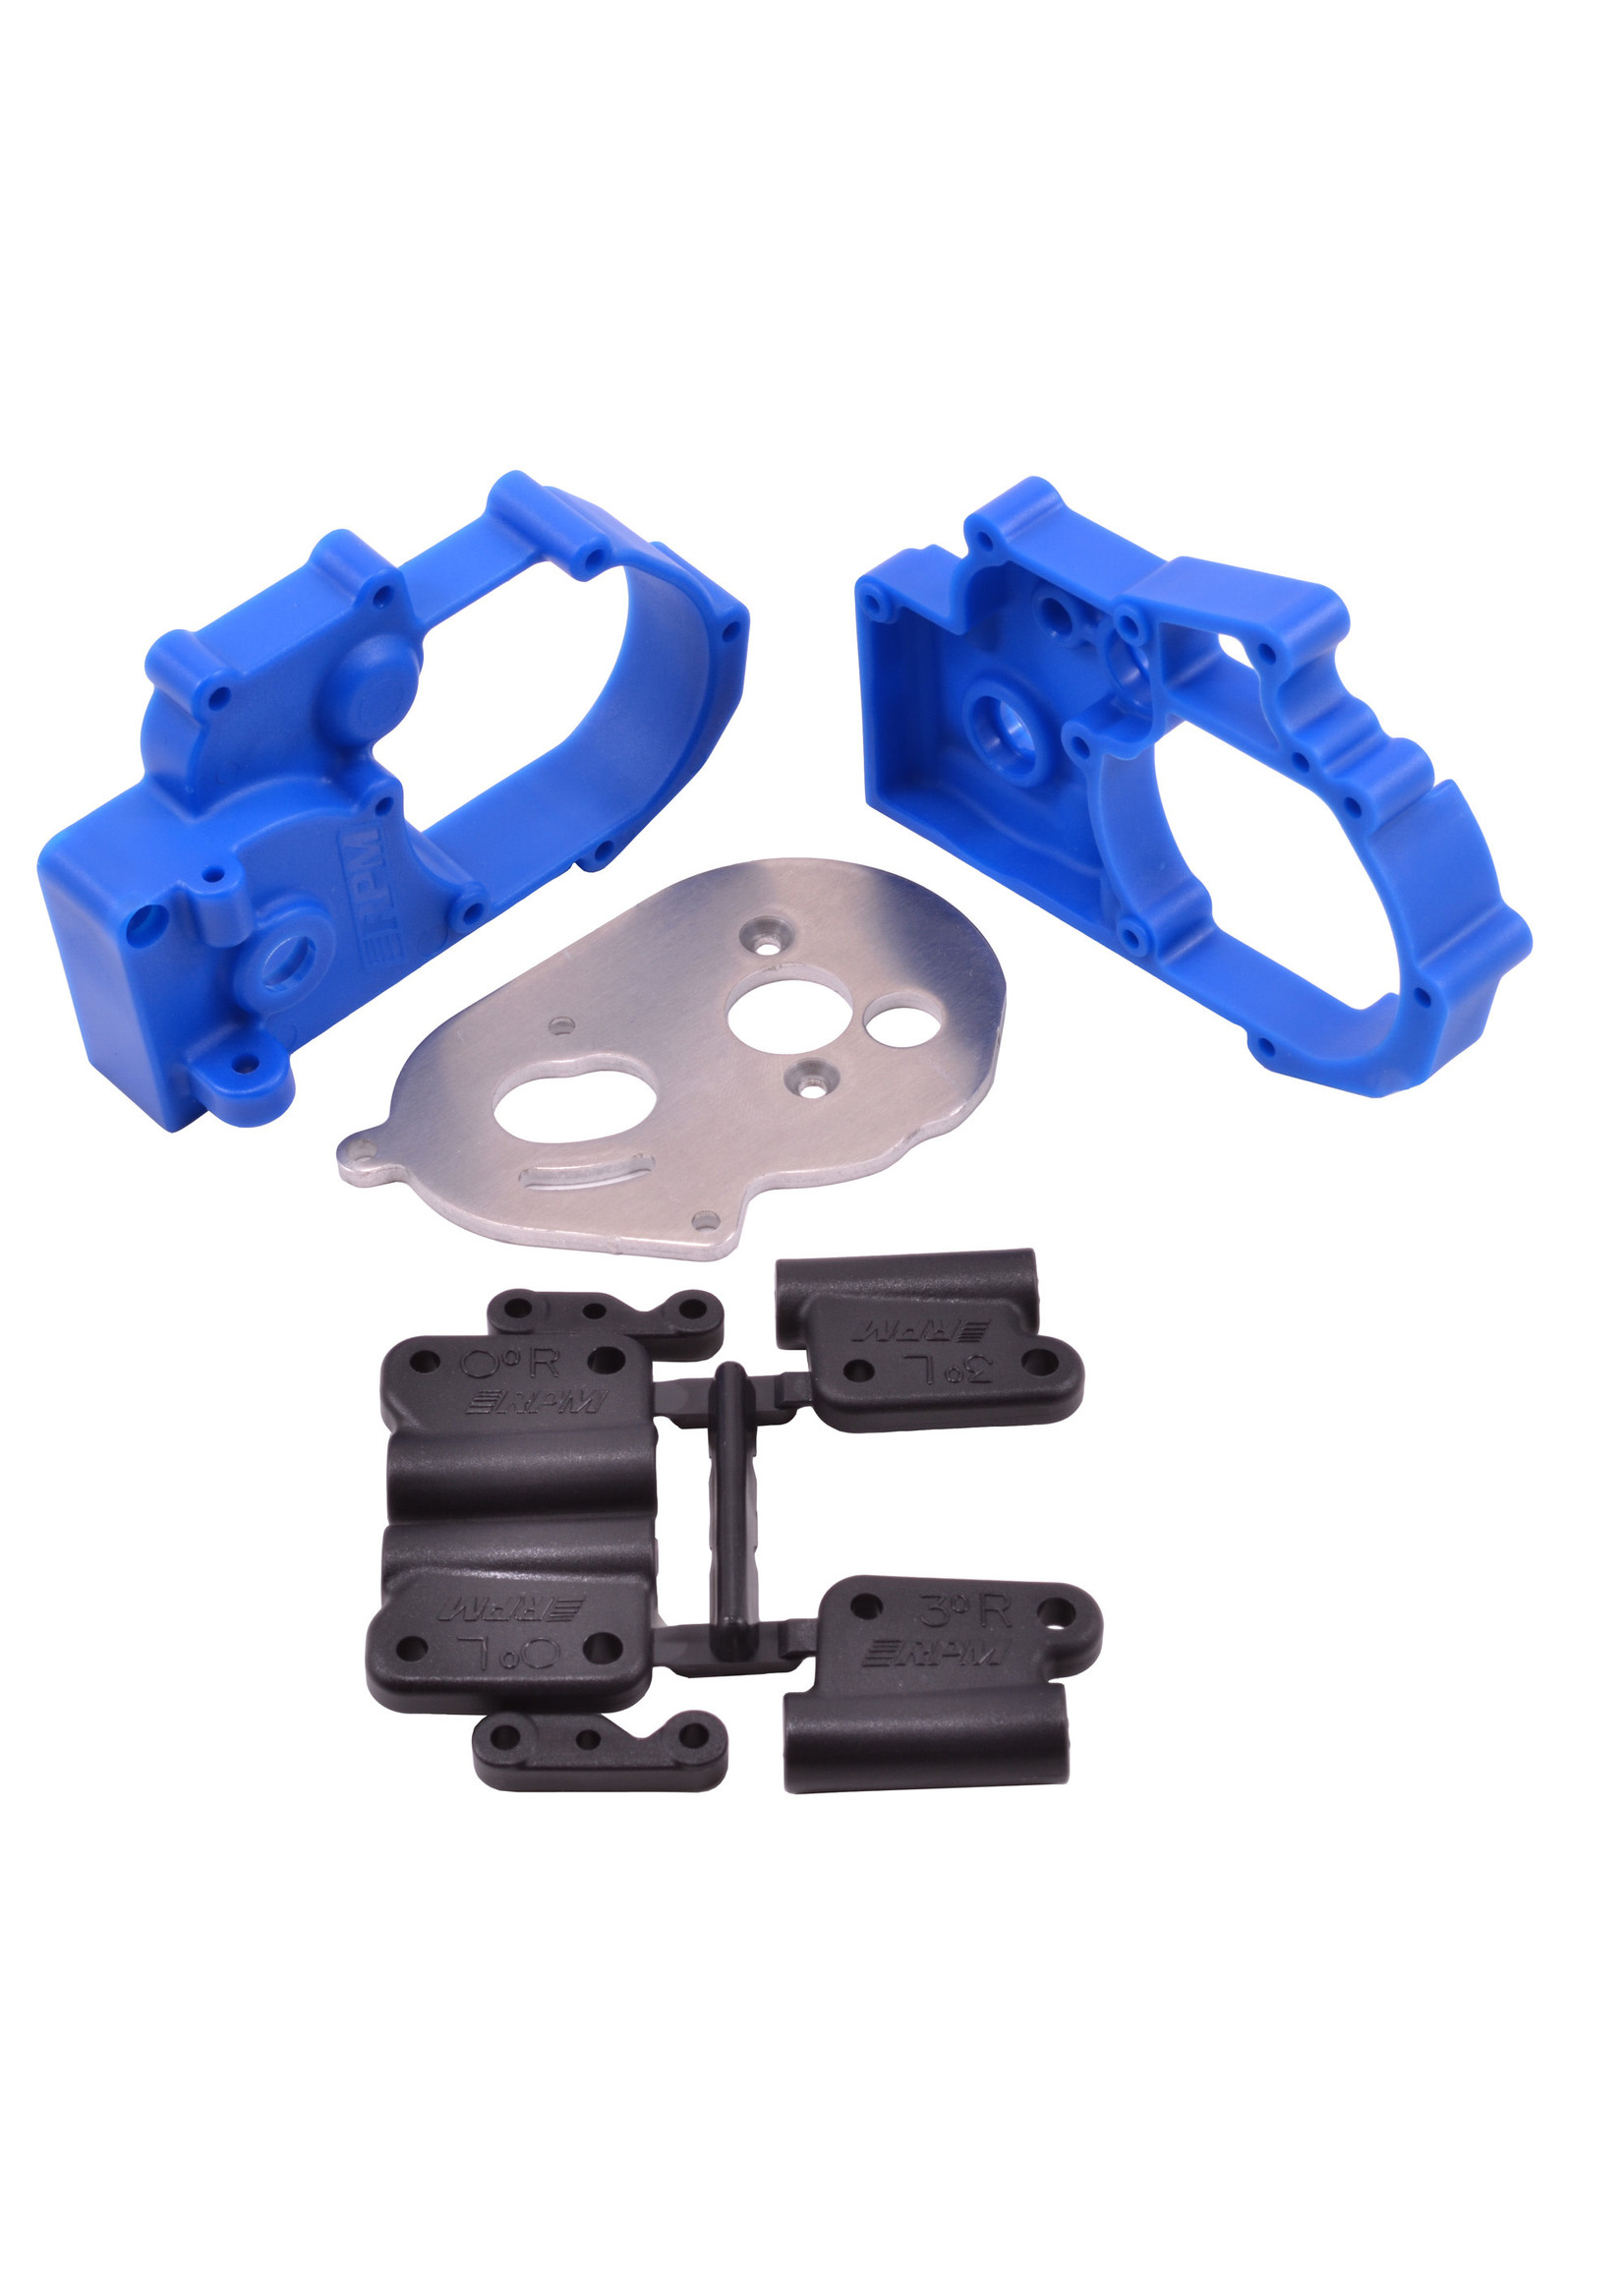 RPM RPM73615 RPM Blue Gearbox Housing and Rear Mounts for Traxxas 2wd Vehicles